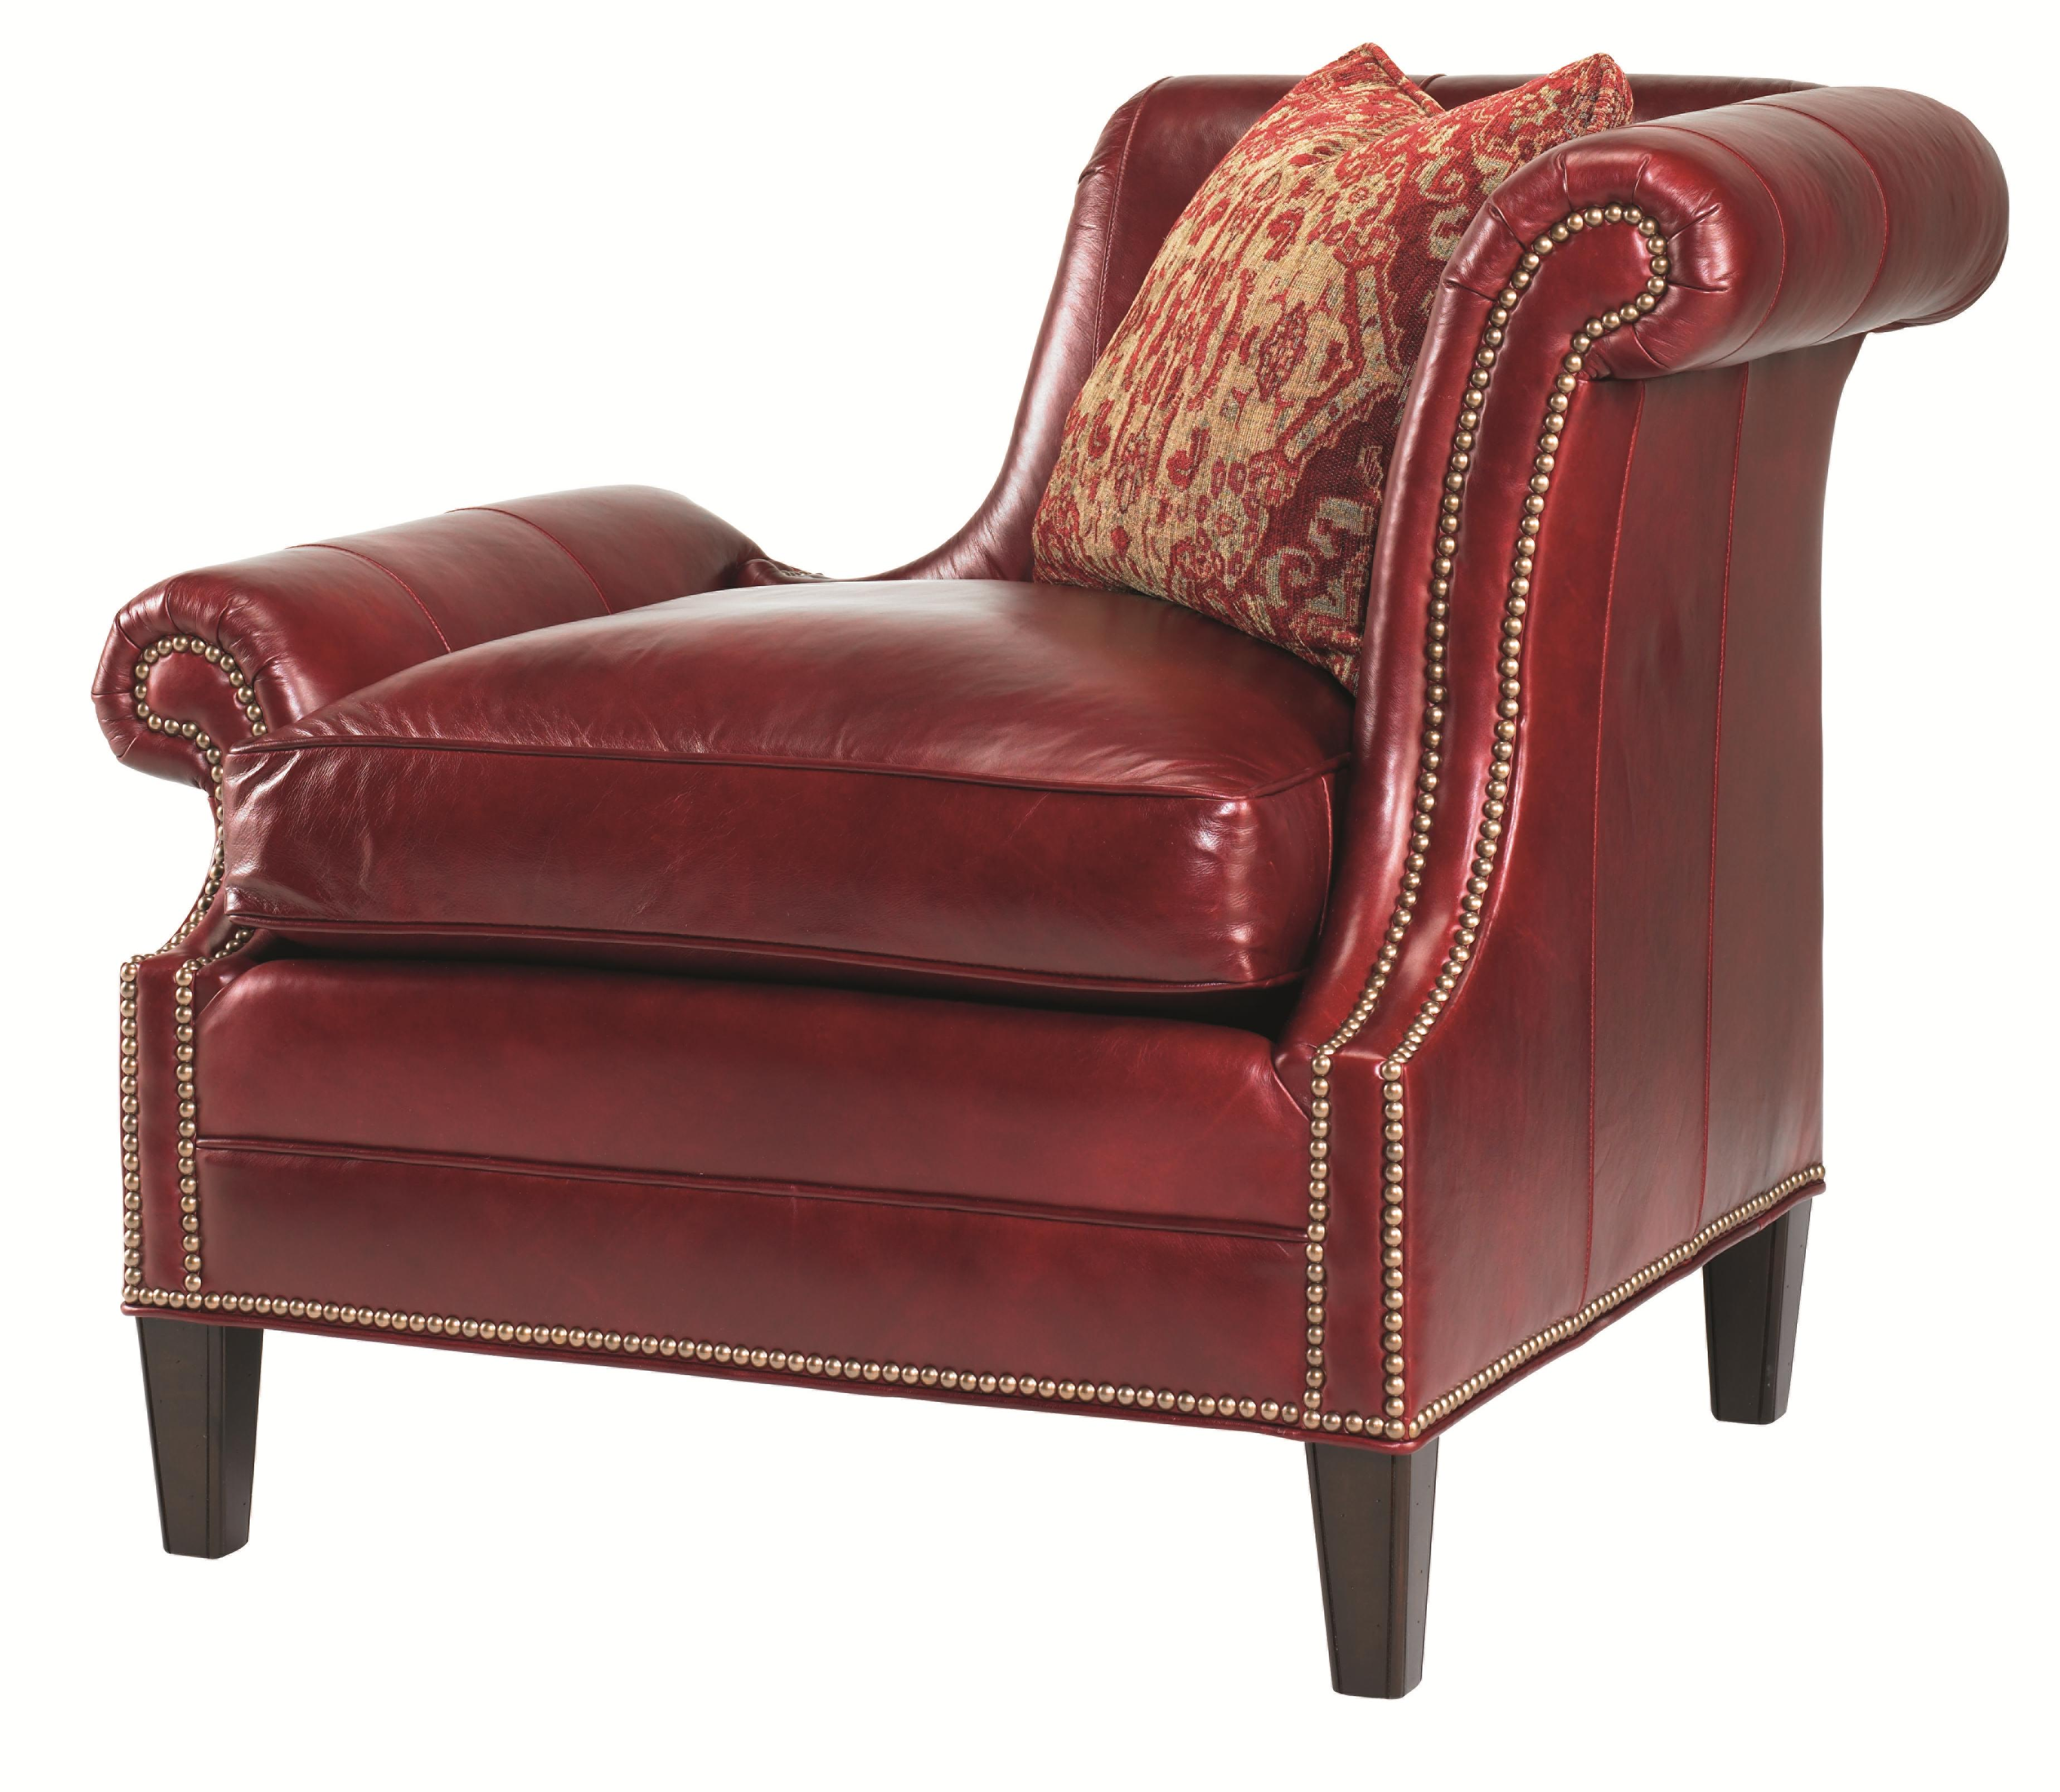 Leather Braddock Raf Upholstered Chair by Lexington at Baer's Furniture